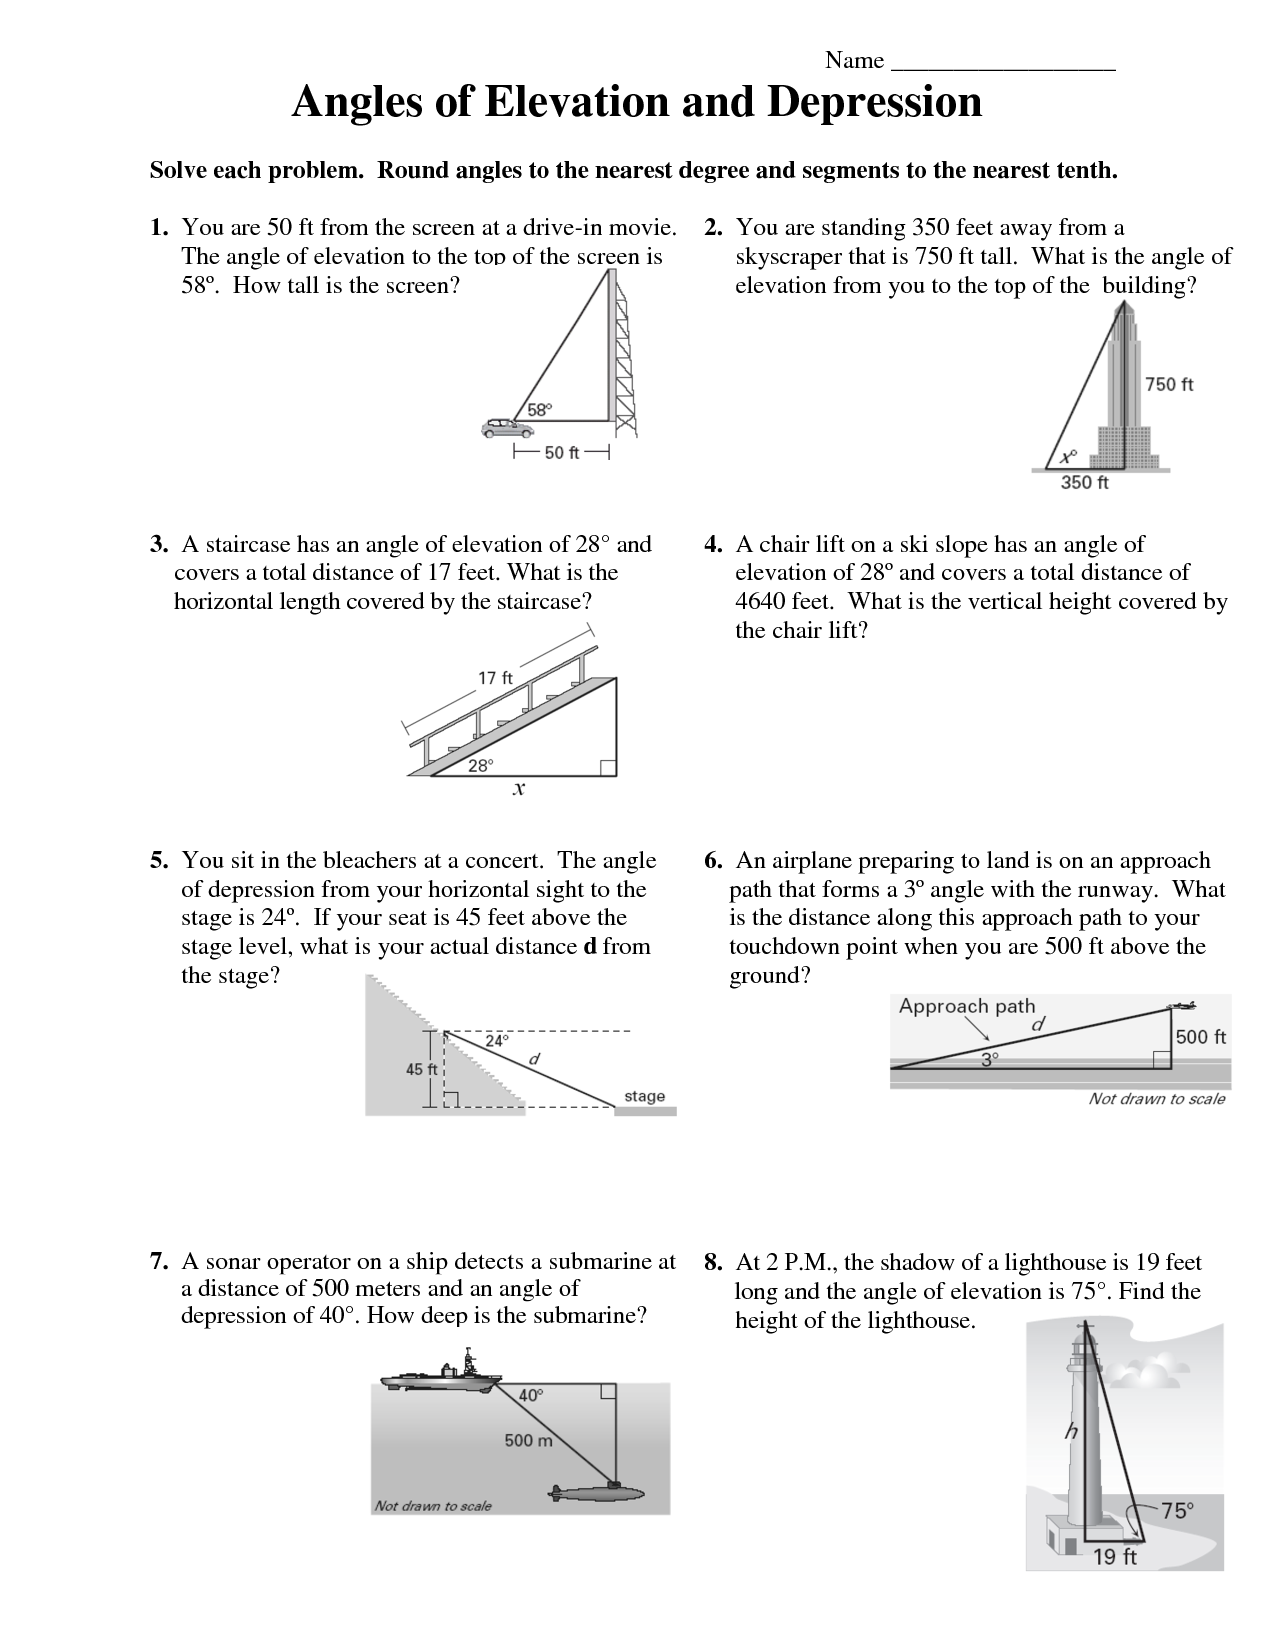 Printables Angle Of Elevation And Depression Worksheet mrs garnet at pvphs hw12 elevationdepression worksheet